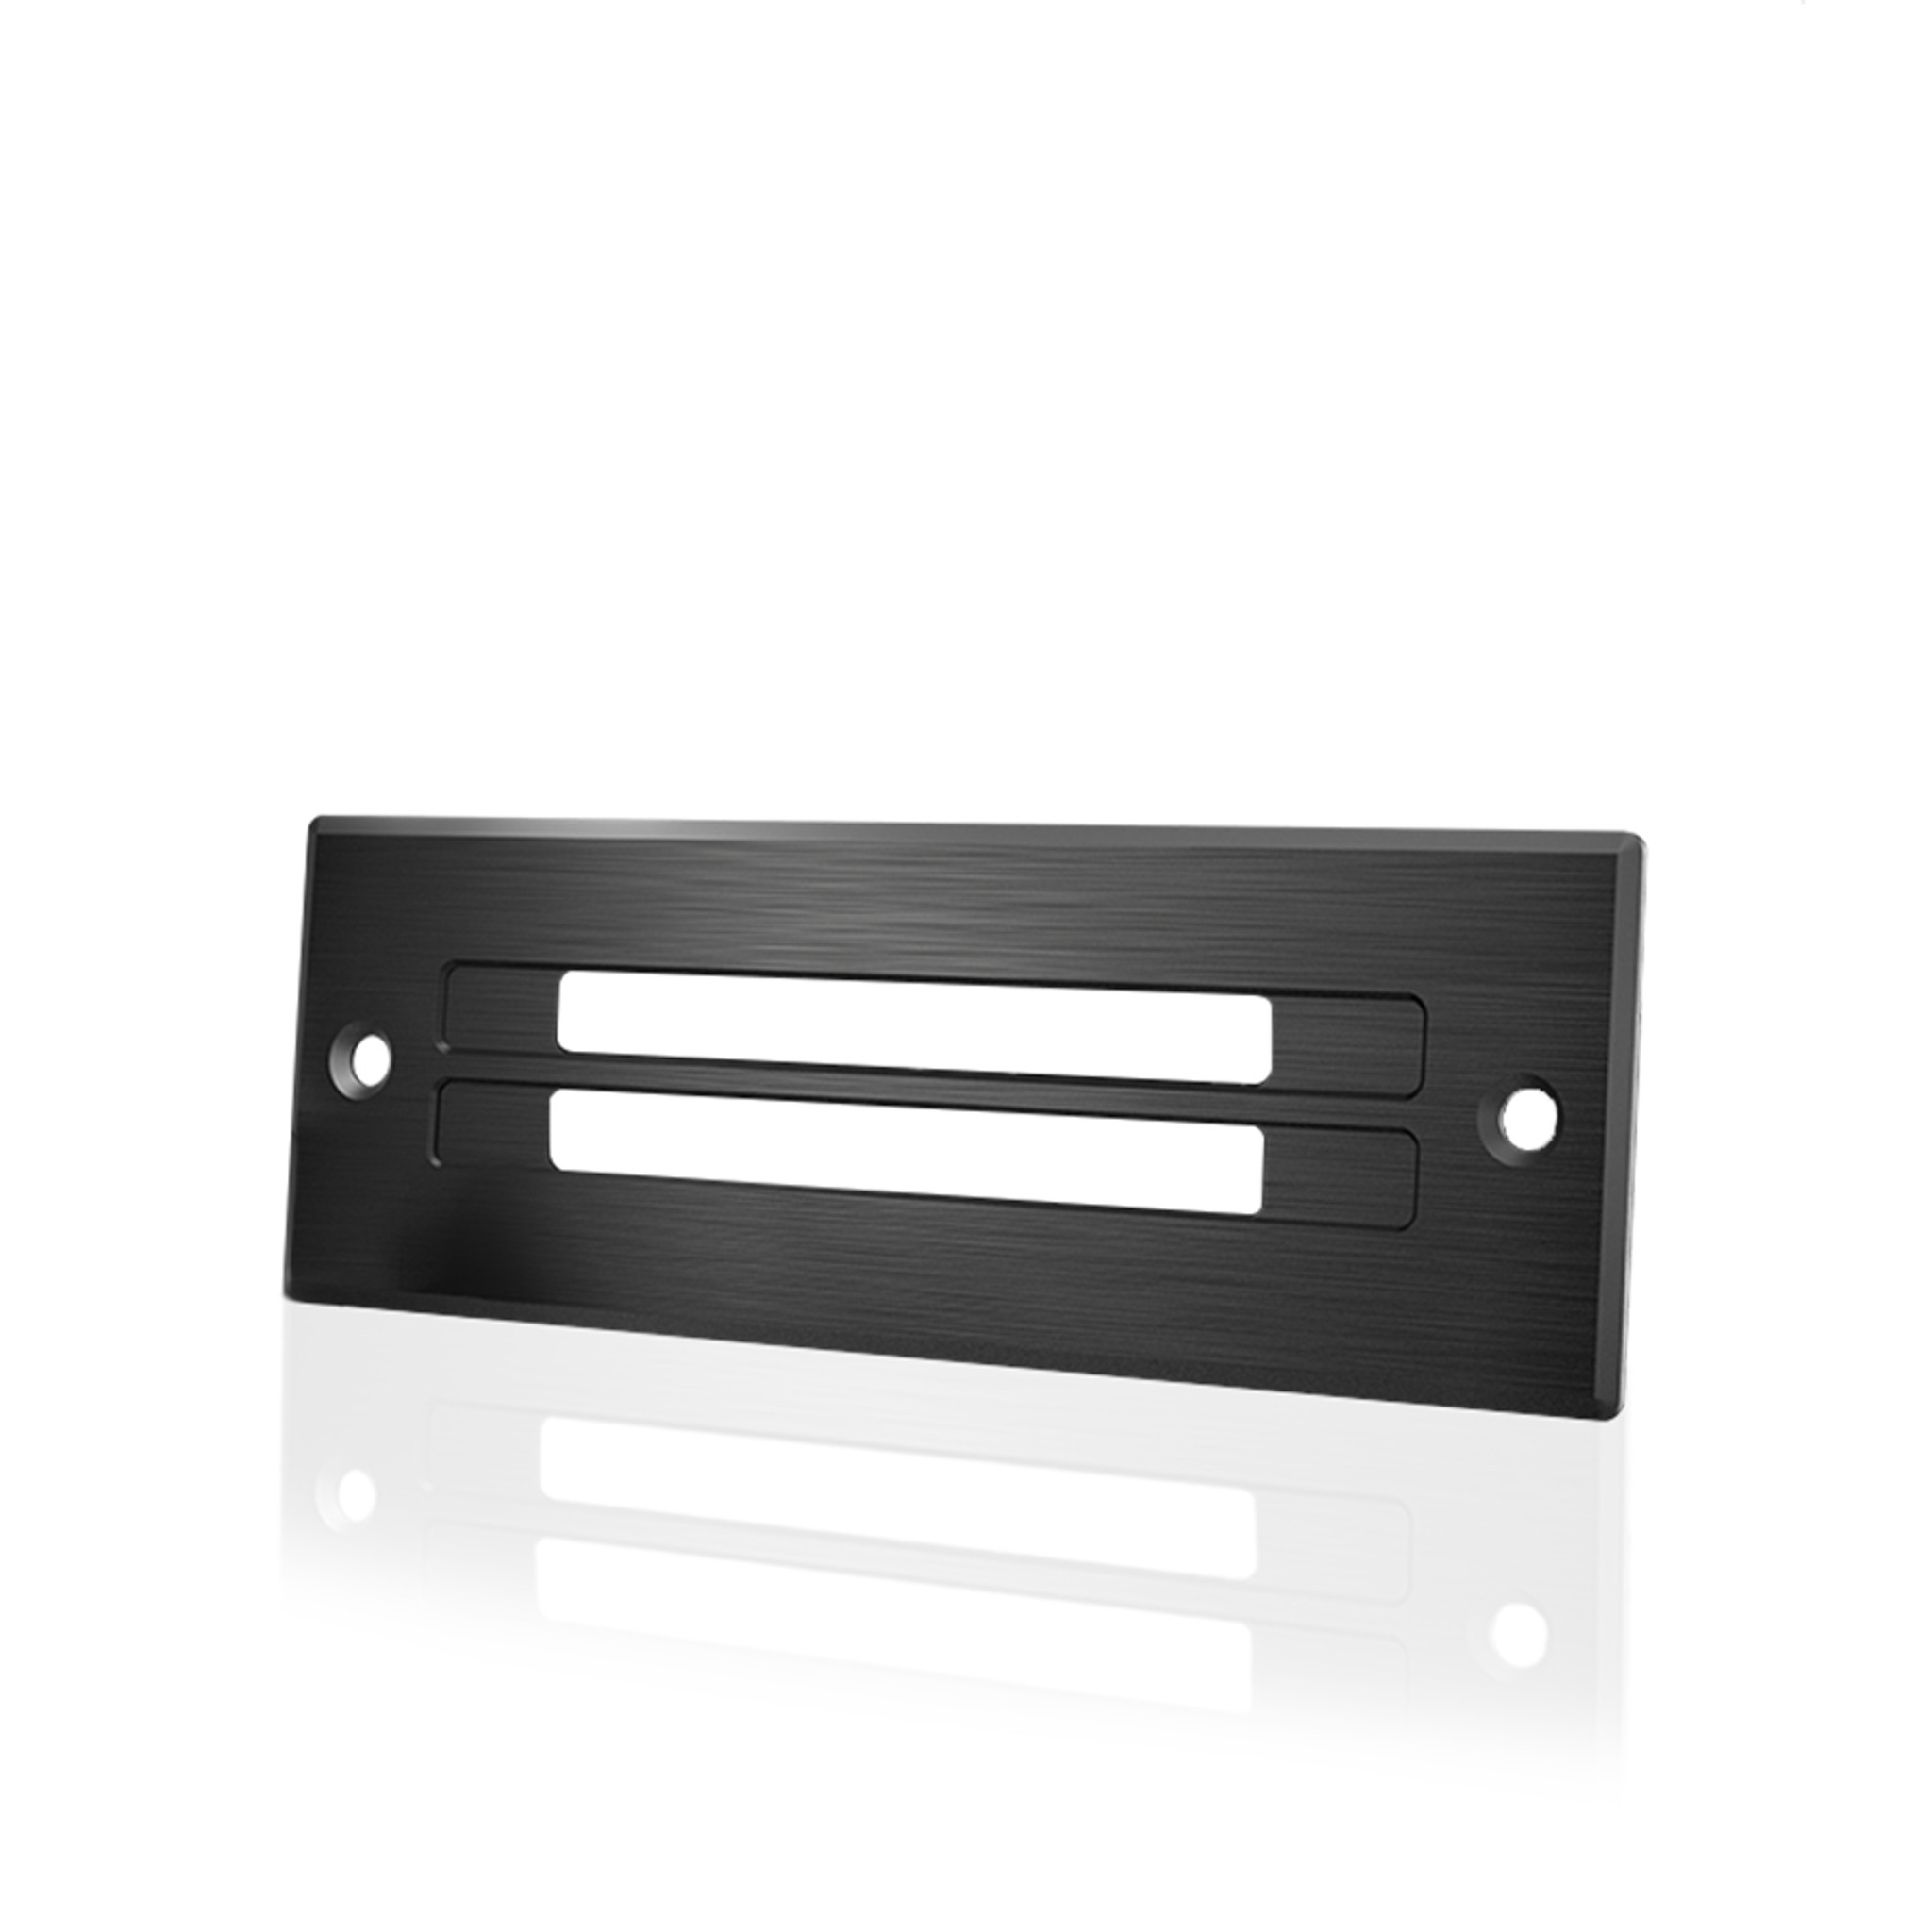 AC INFINITY, Cabinet Ventilation Grille Black, 6 Inch Low